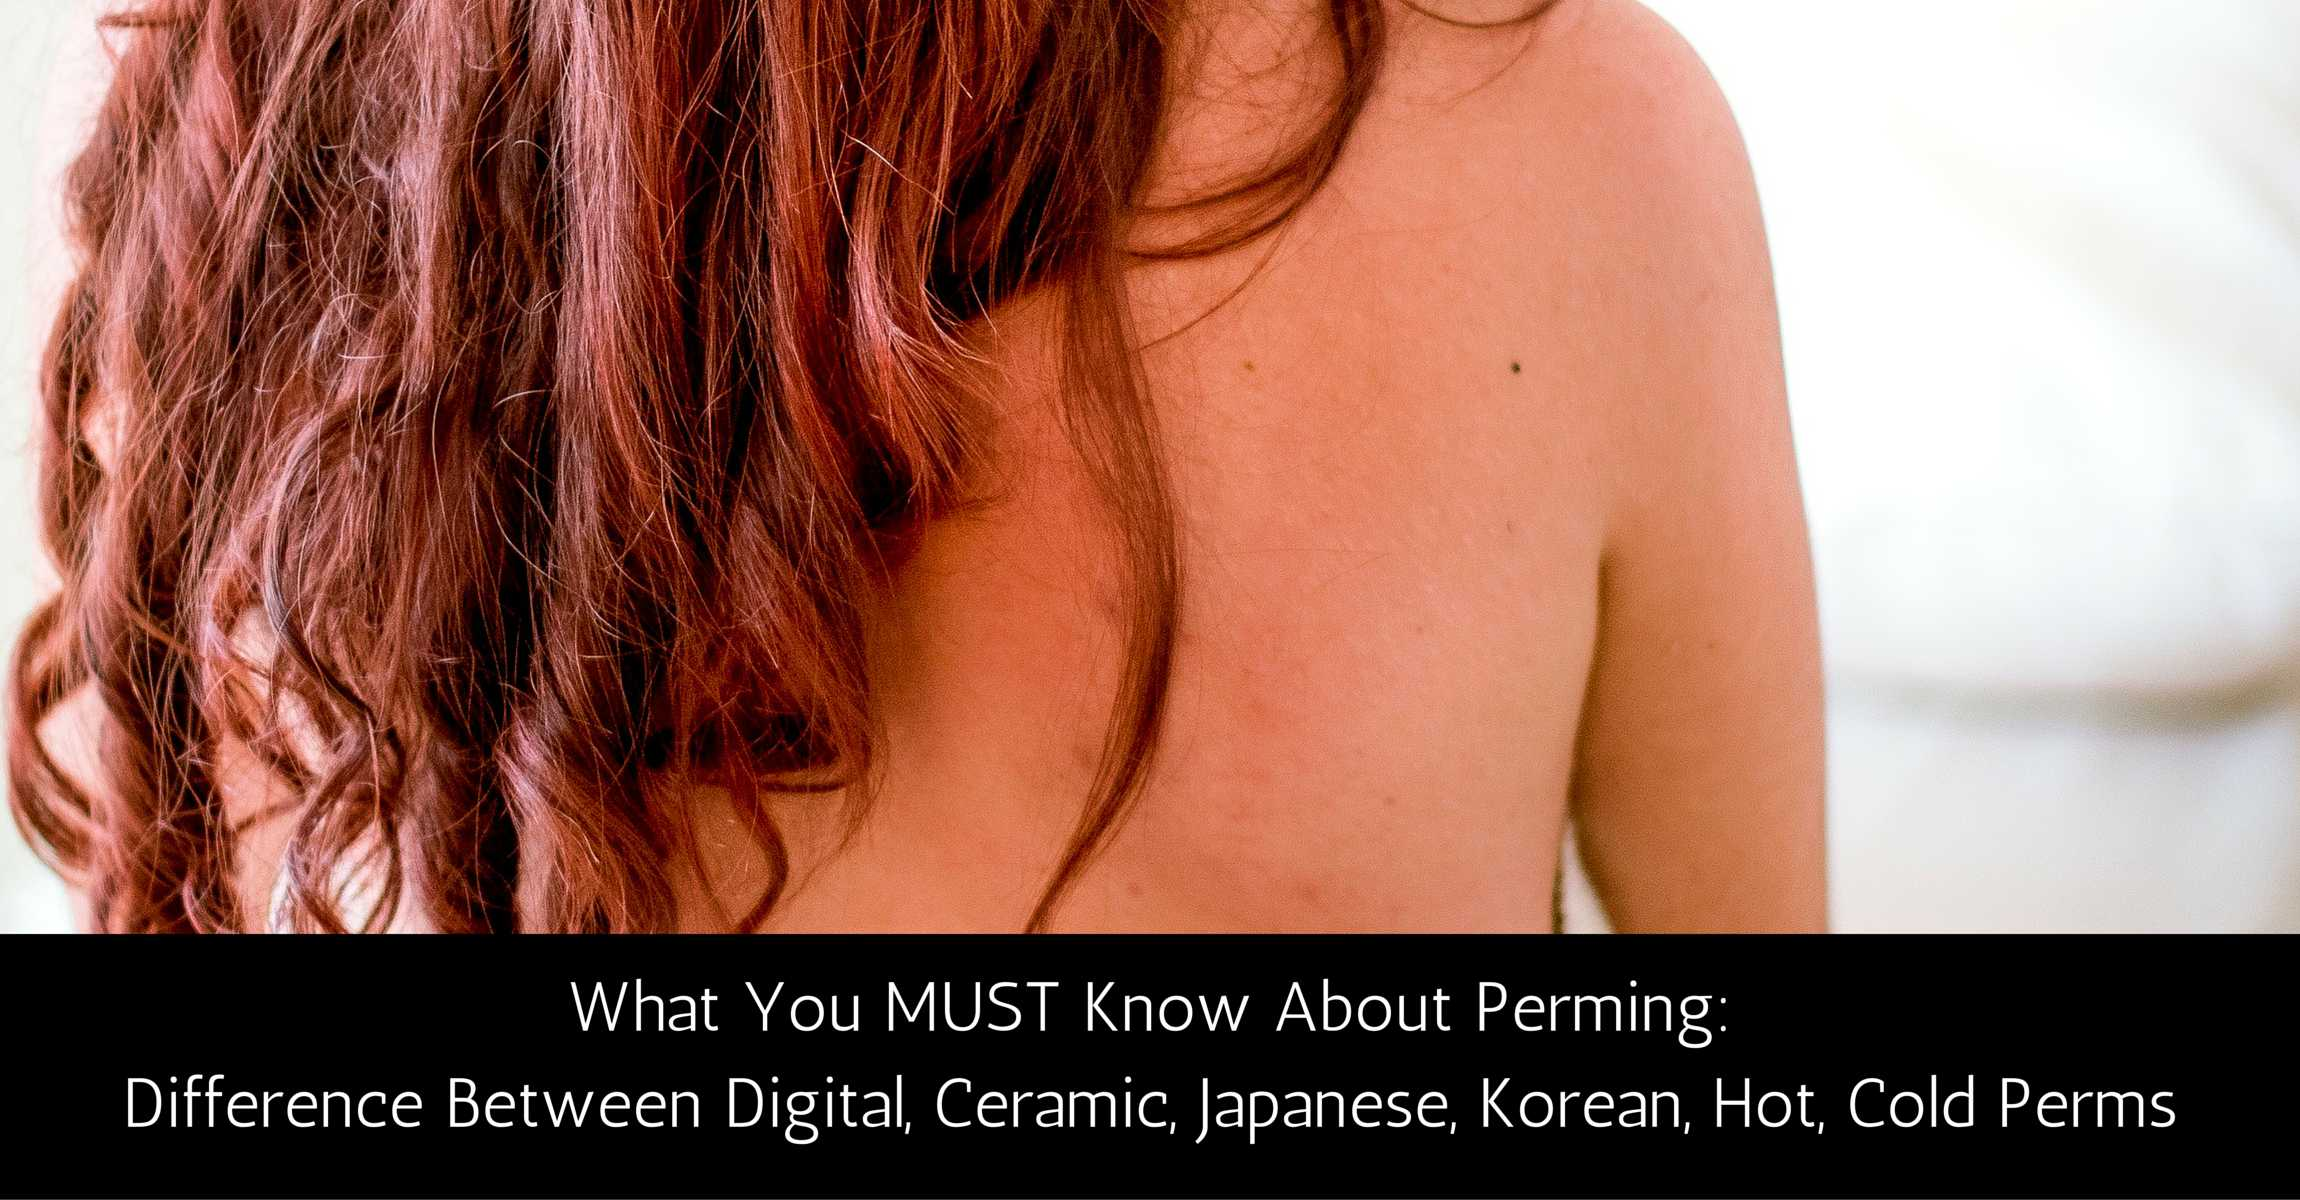 Best japanese straight perm - Digital Vs Ceramic Vs Japanese Vs Korean Perms What You Must Know About Perms